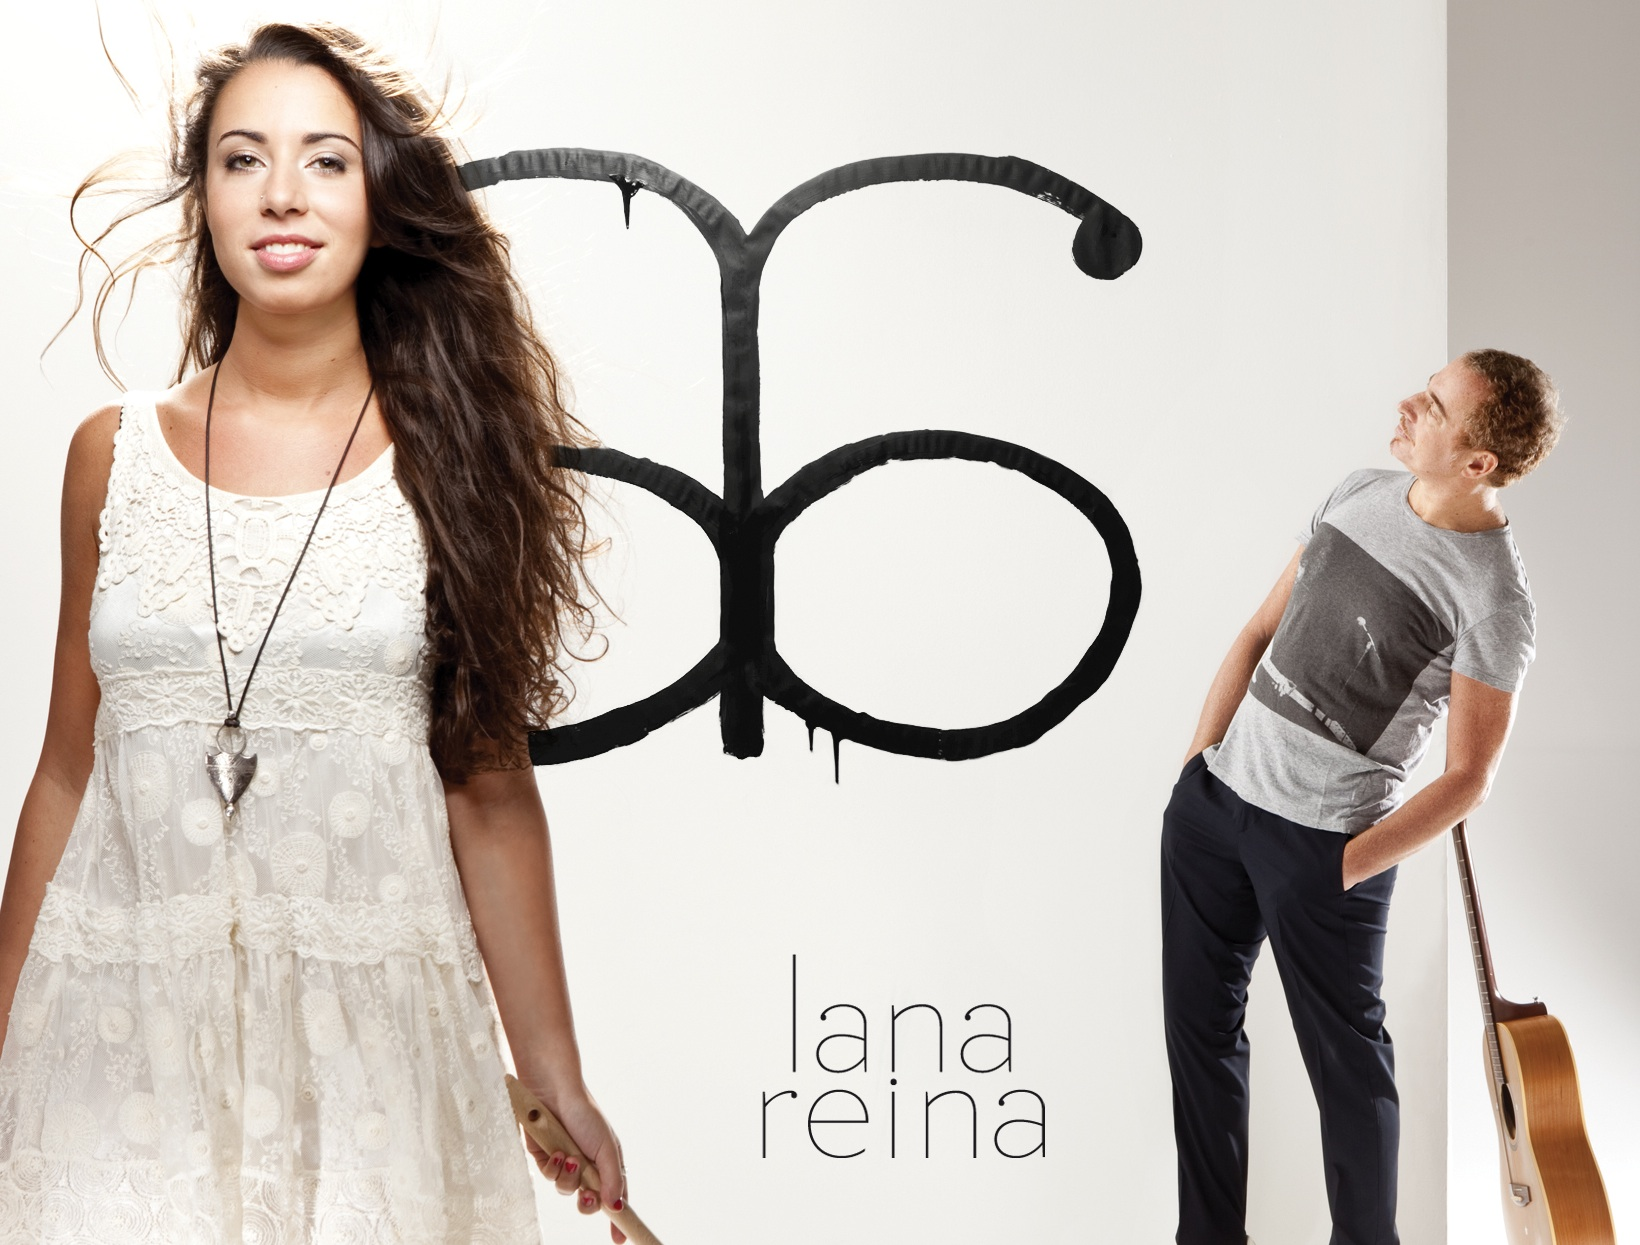 lanareina HD cover EP small